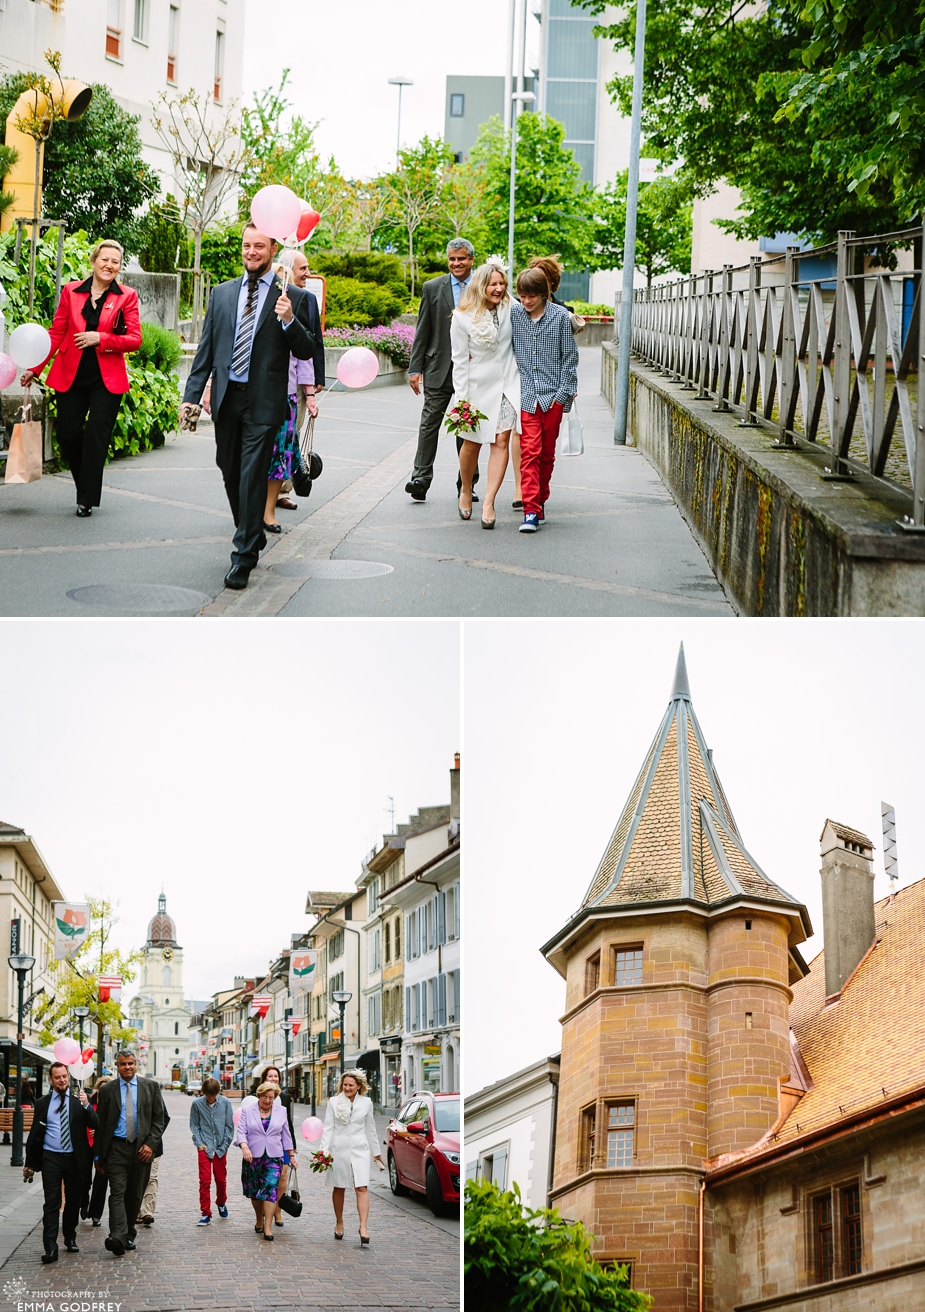 Morges-Civil-Wedding-Photographer-05.jpg